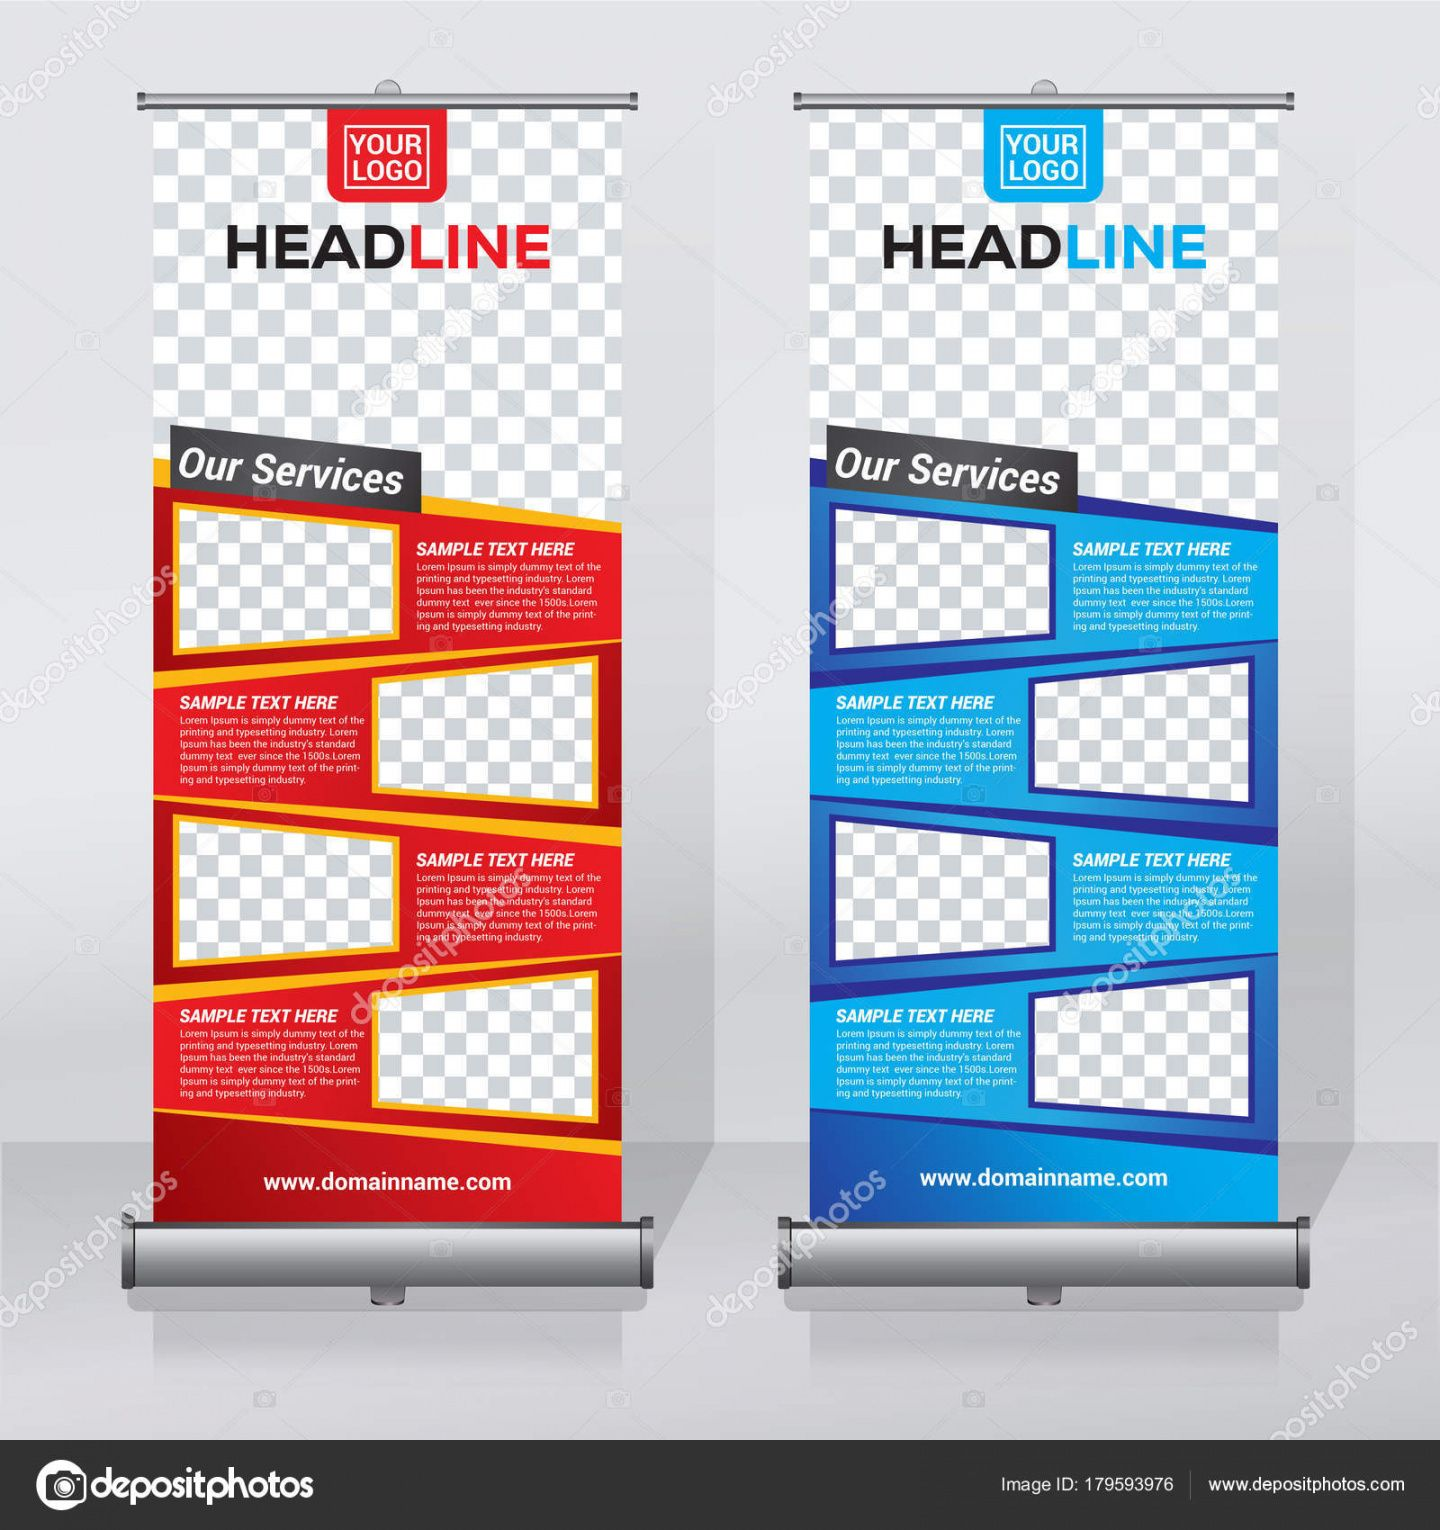 editable roll up banner design template abstract background pull up design modern  xbanner rectangle size 179593976 pull up banner design template pdf